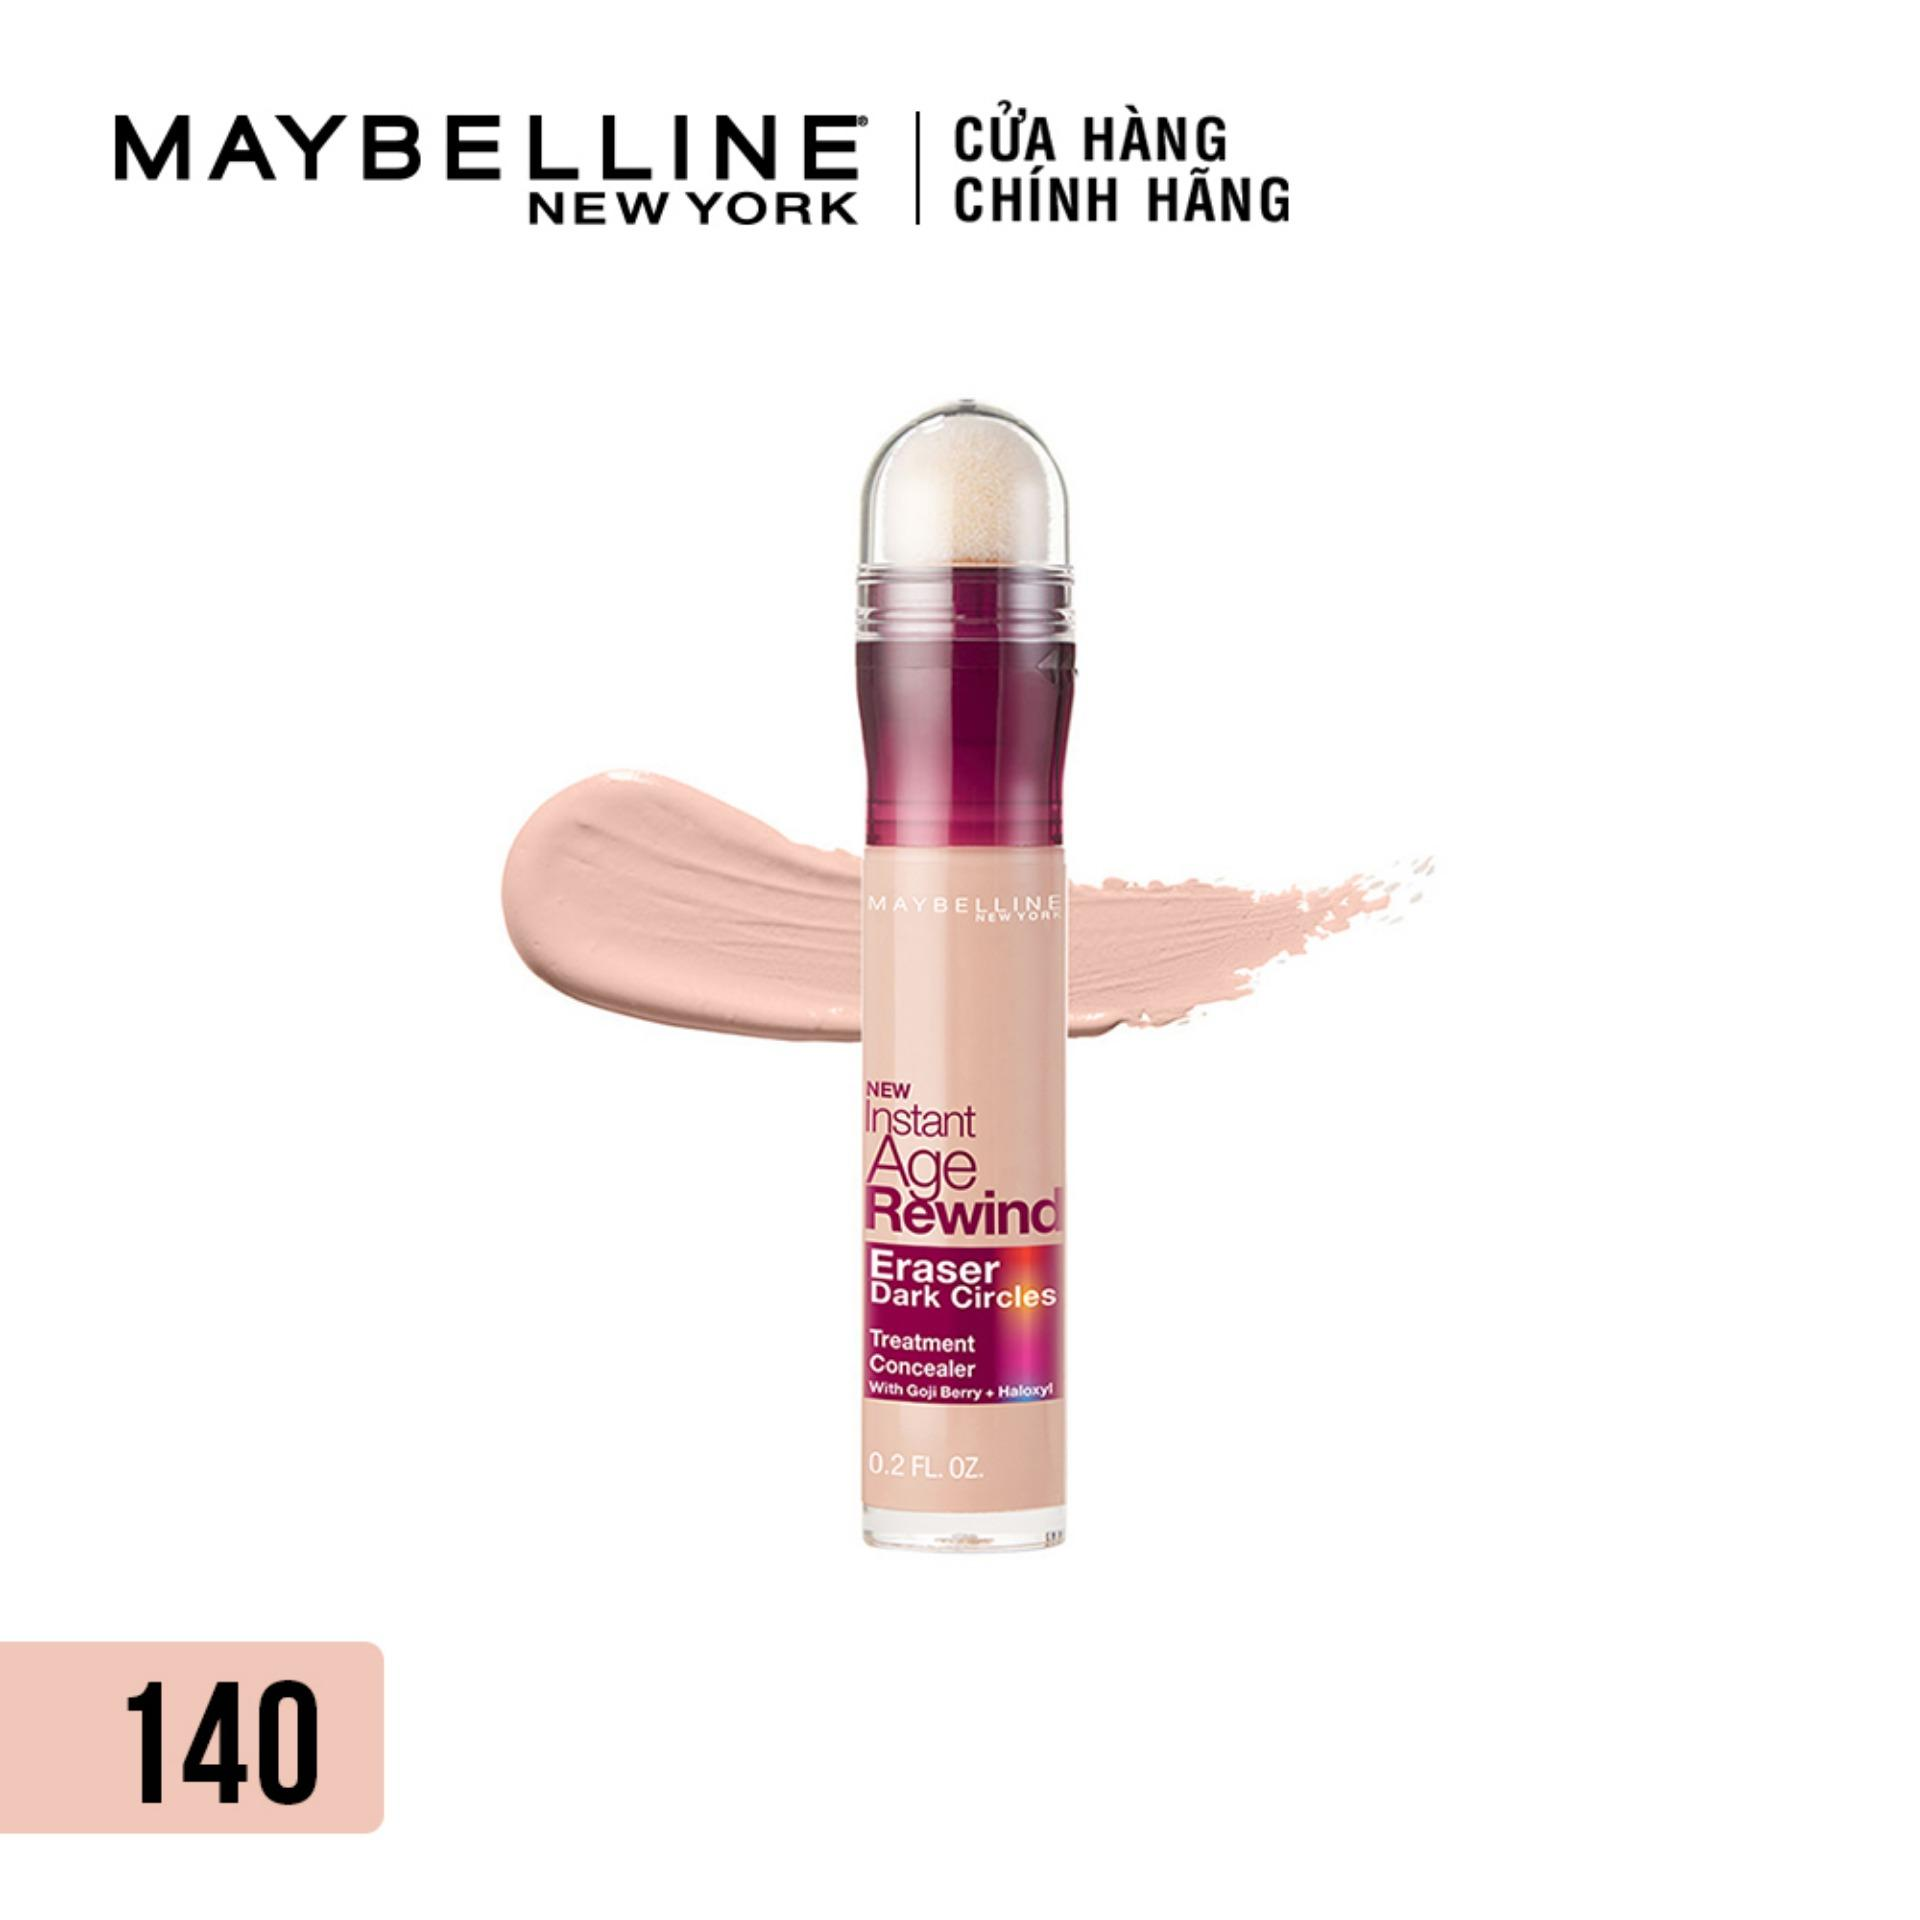 [TẶNG] Bút cushion che khuyết điểm, giảm quầng thâm Maybelline New York Instant Age Rewind Concealer 6ml